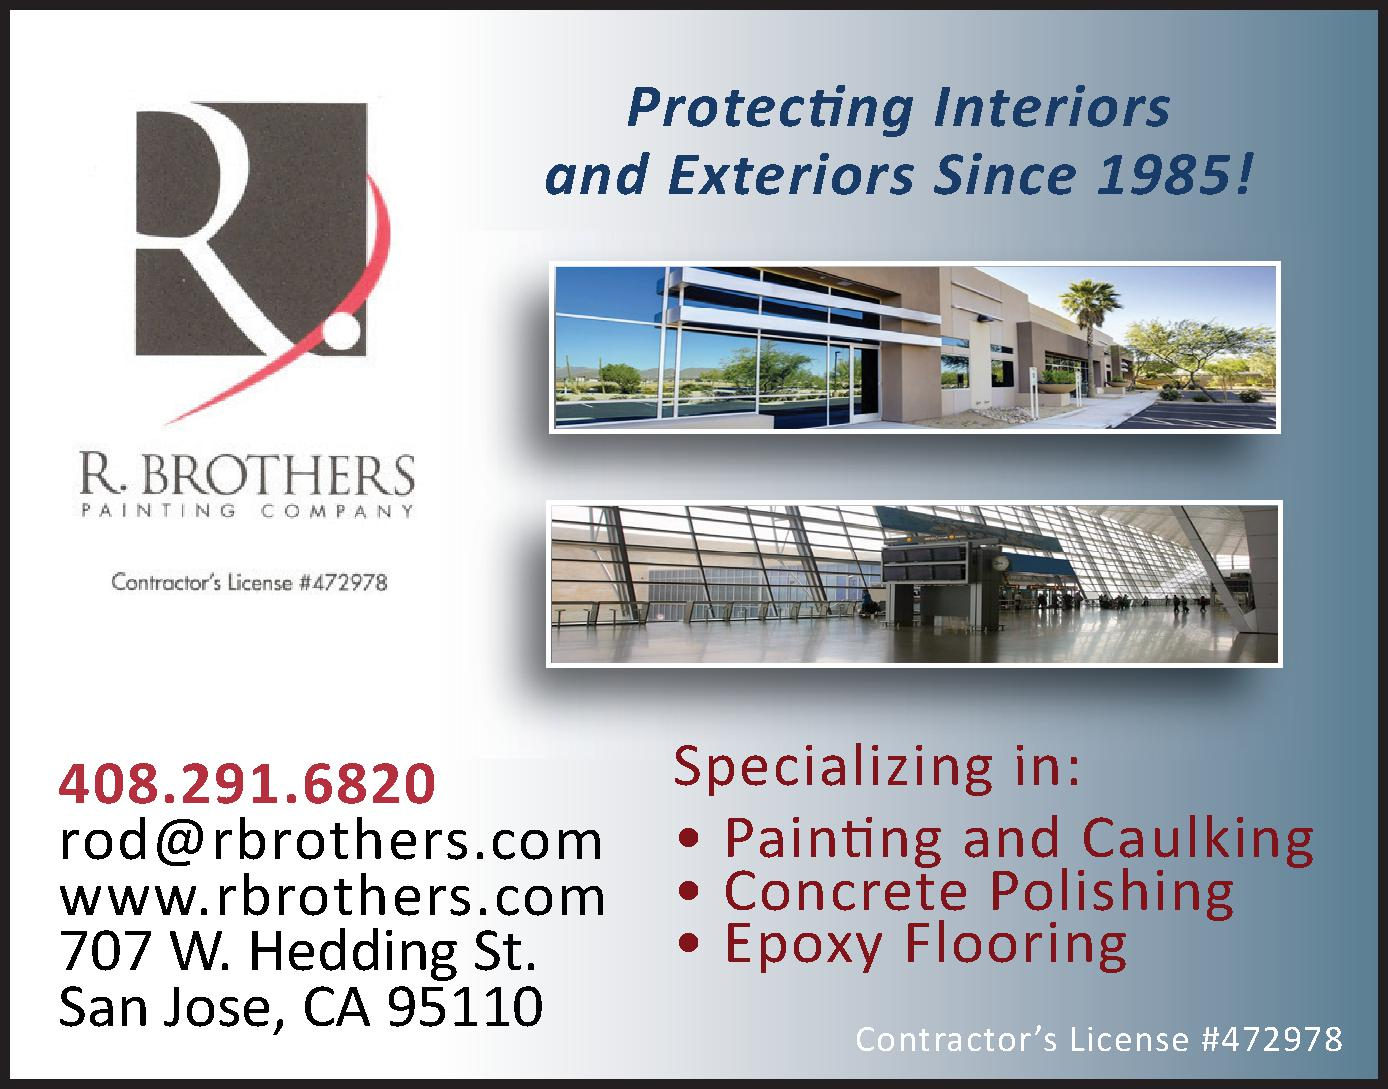 R Brothers Painting